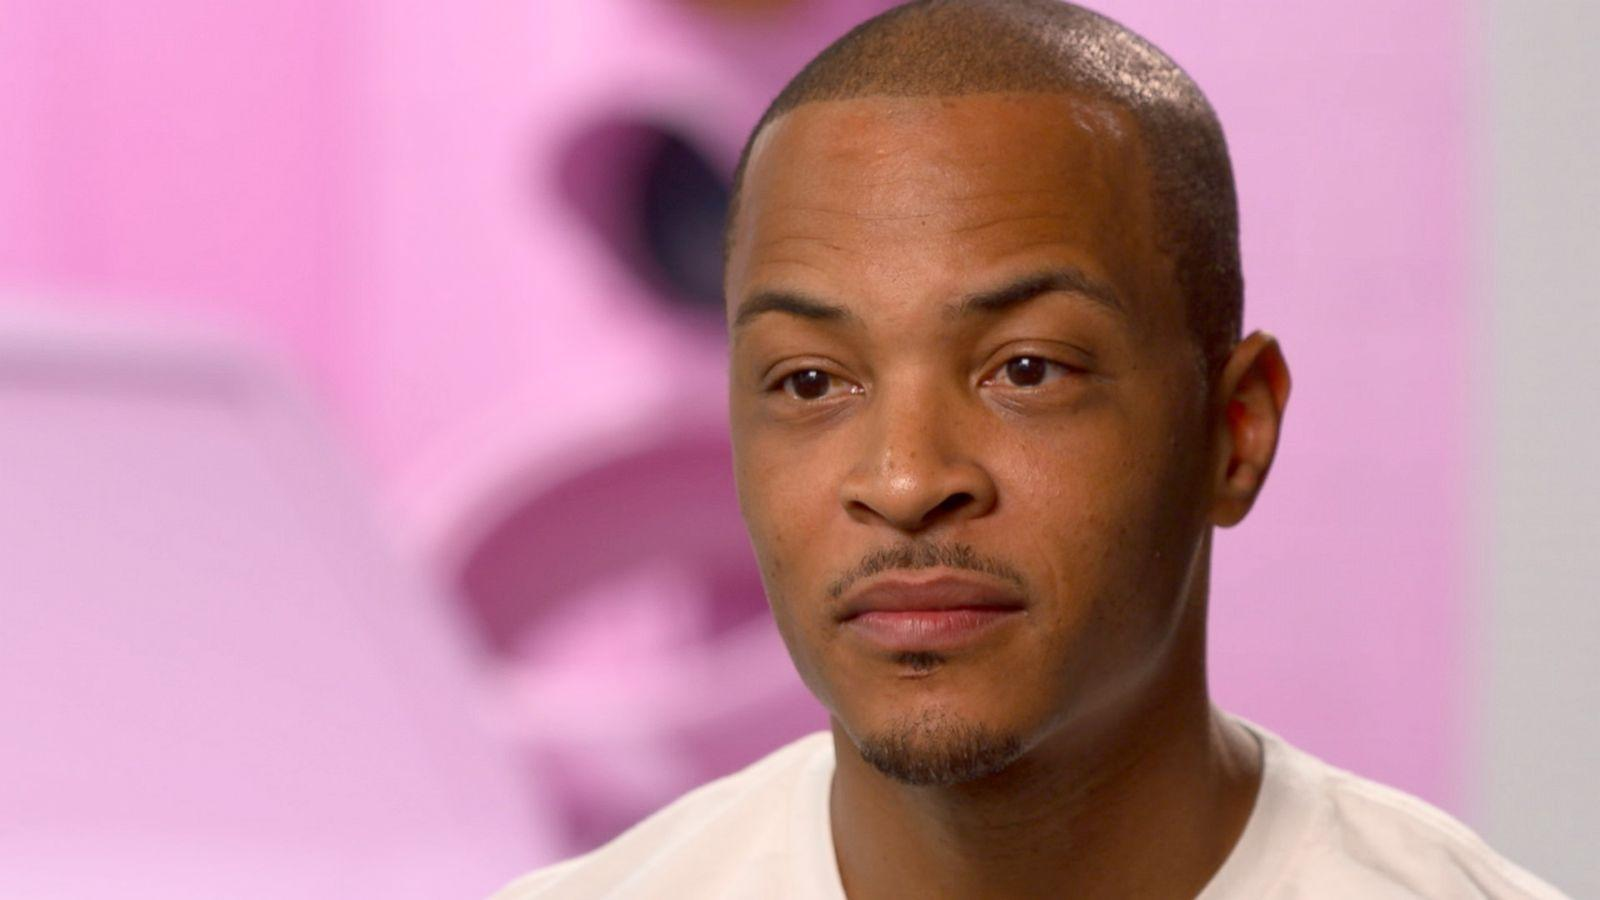 T.I. Has A Charity-Related Message For His Fans - See The Video